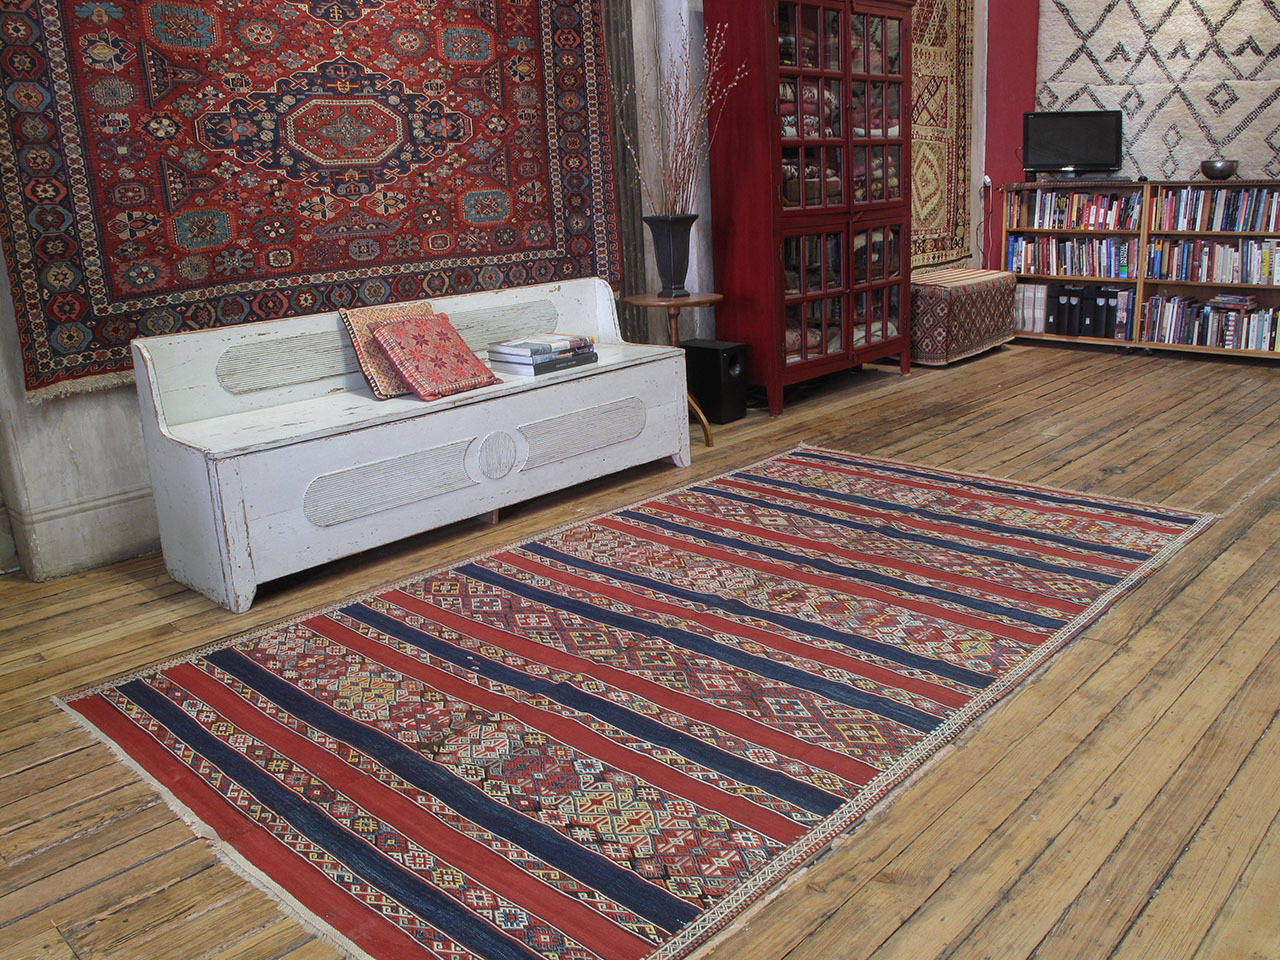 Antique Malatya Kilim rug. A great antique tribal flat-weave rug attributed to the Malatya province in Eastern Turkey. Woven in two narrow panels, like many nomadic tribal weavings, this handsome Kilim rug displays intricately brocaded bands in